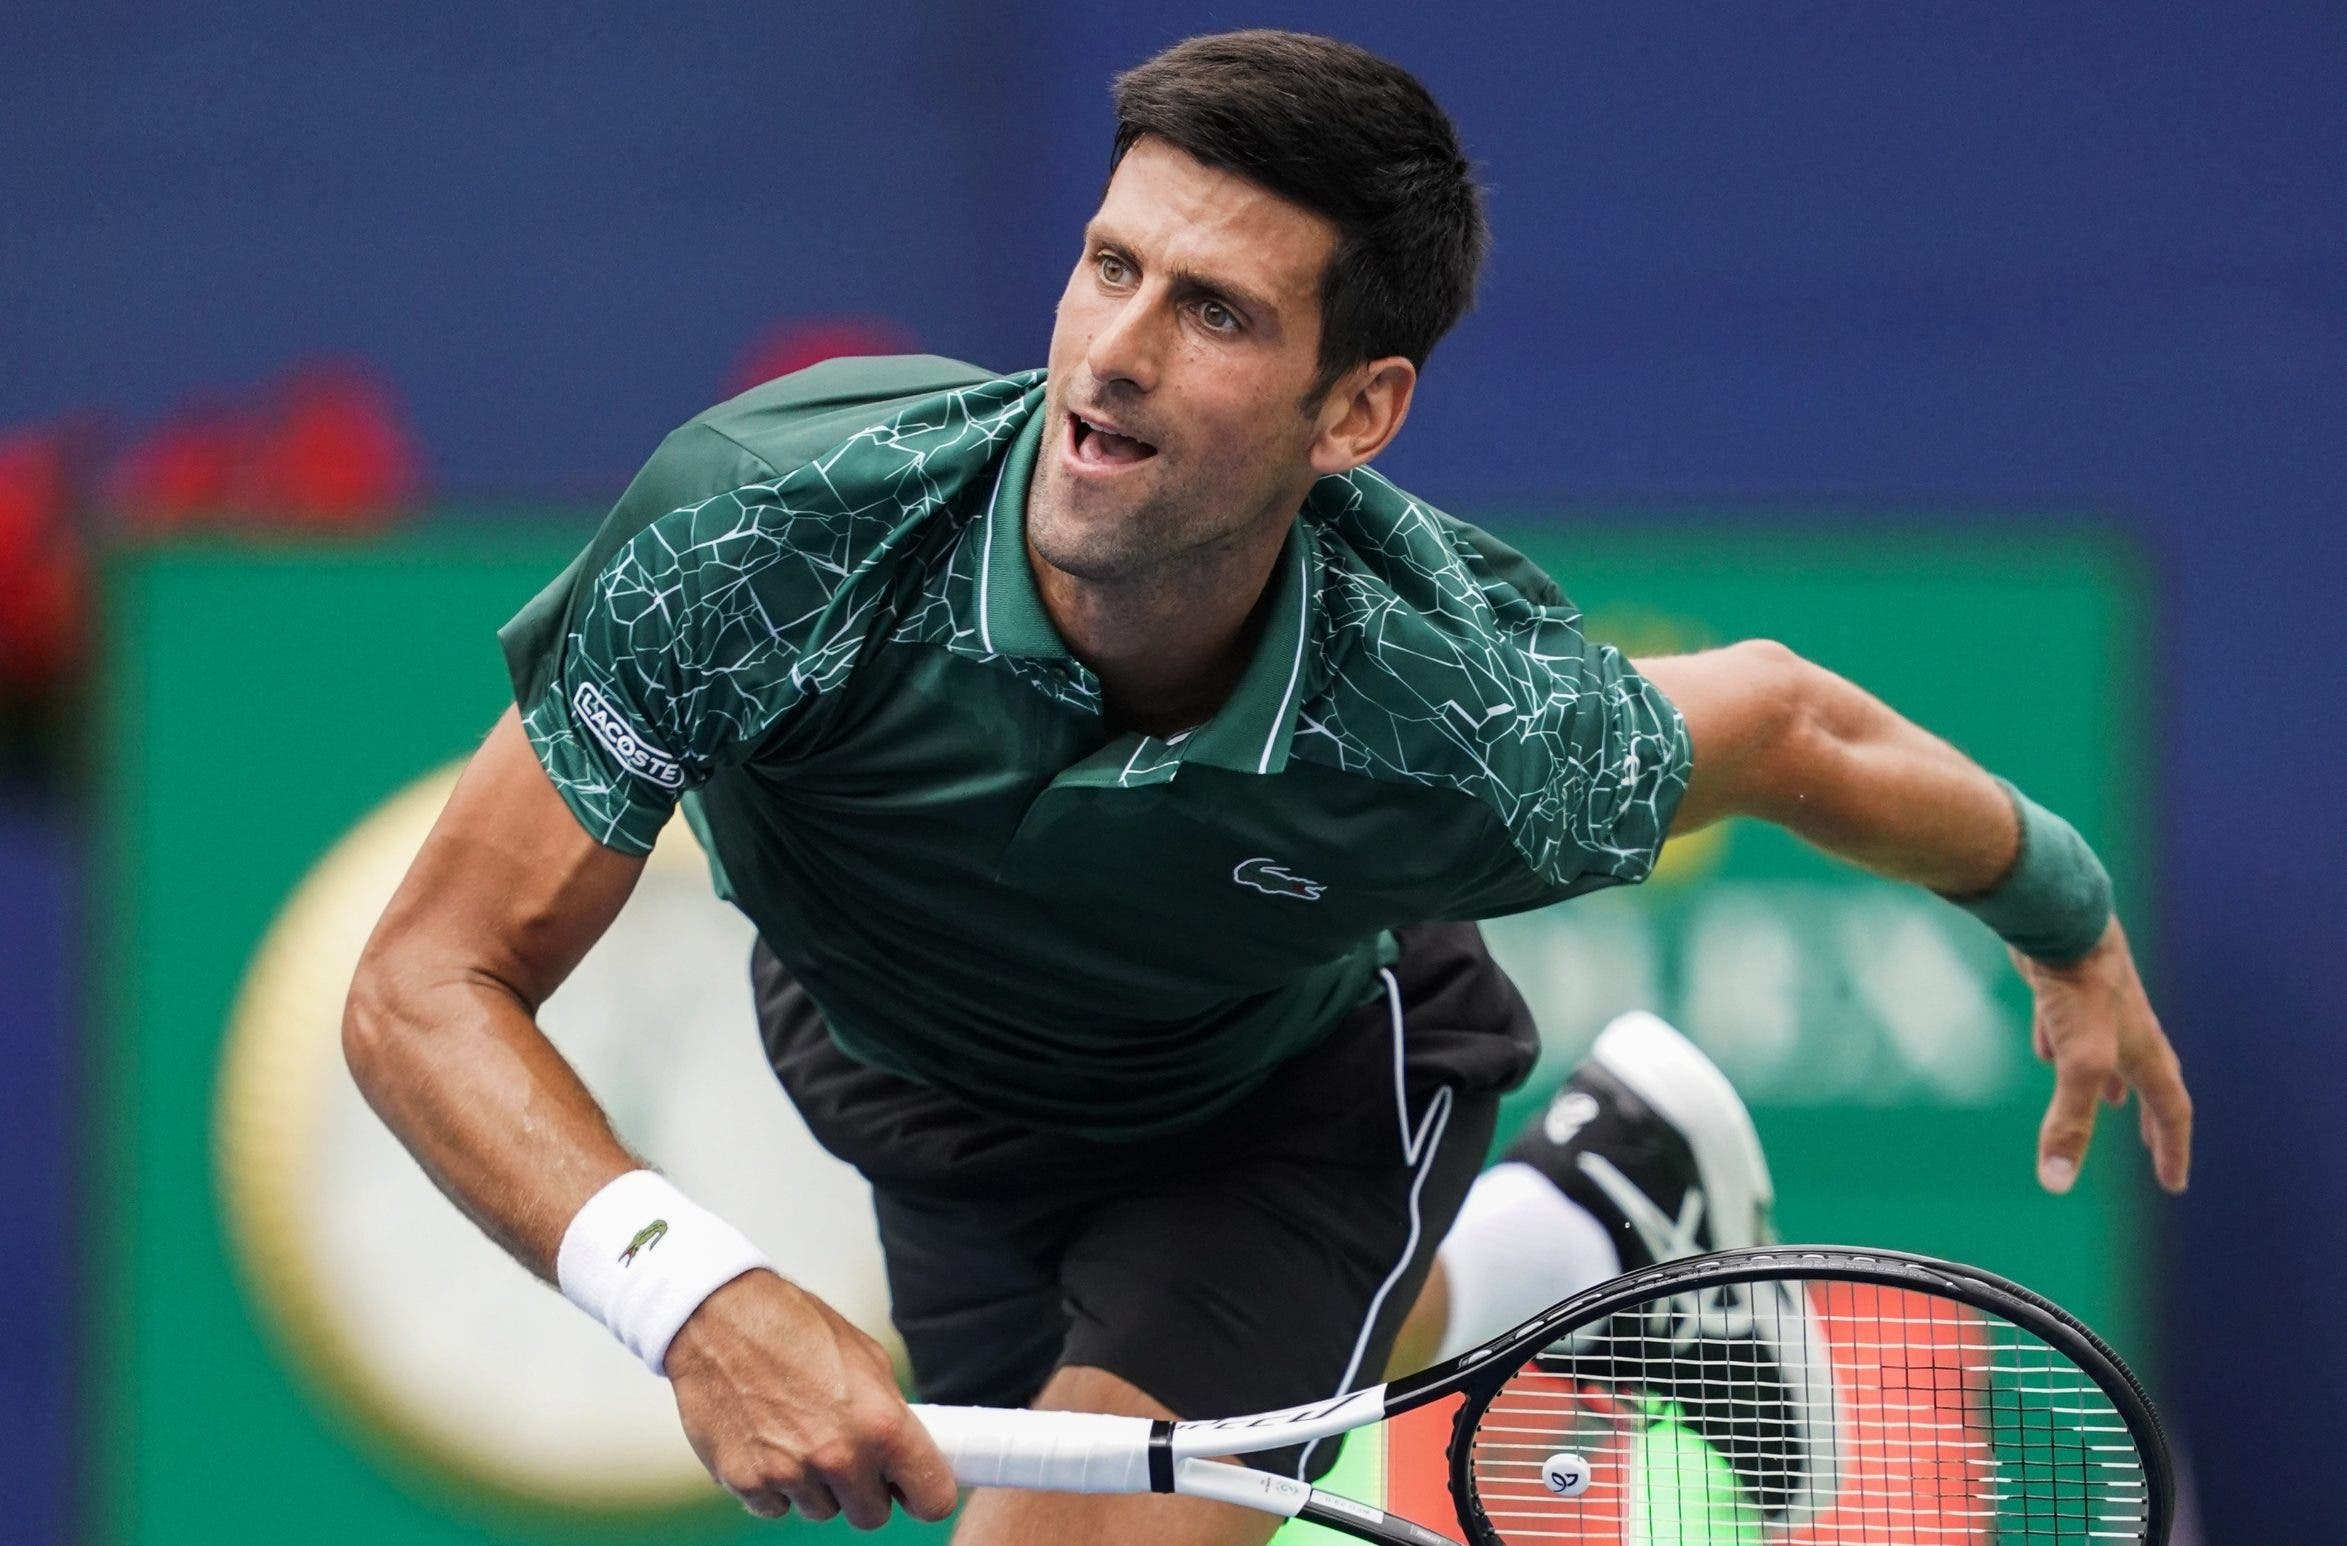 el serbio Novak Djokovic en la final del US Open.